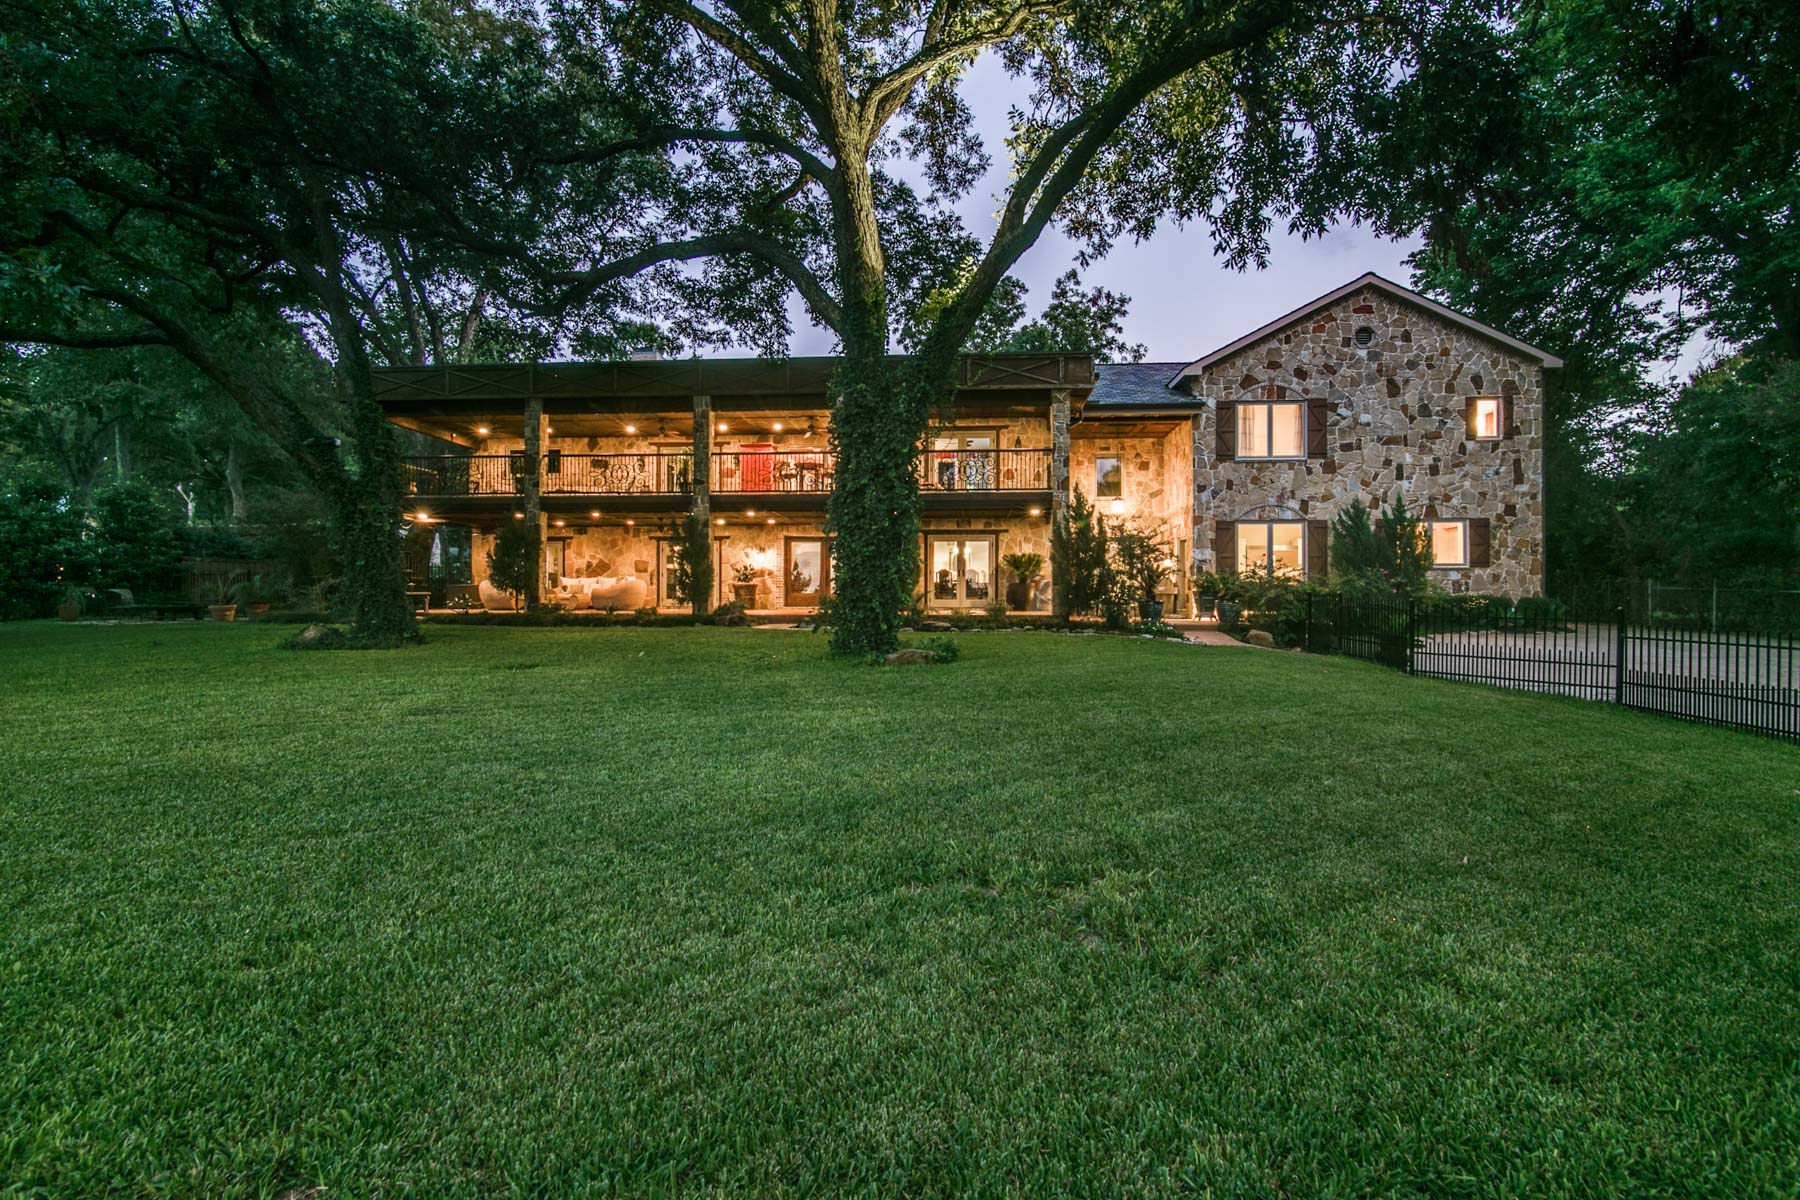 Single Family Home for Sale at White Rock Lake Front Property 8326 Garland Rd Dallas, Texas, 75218 United States